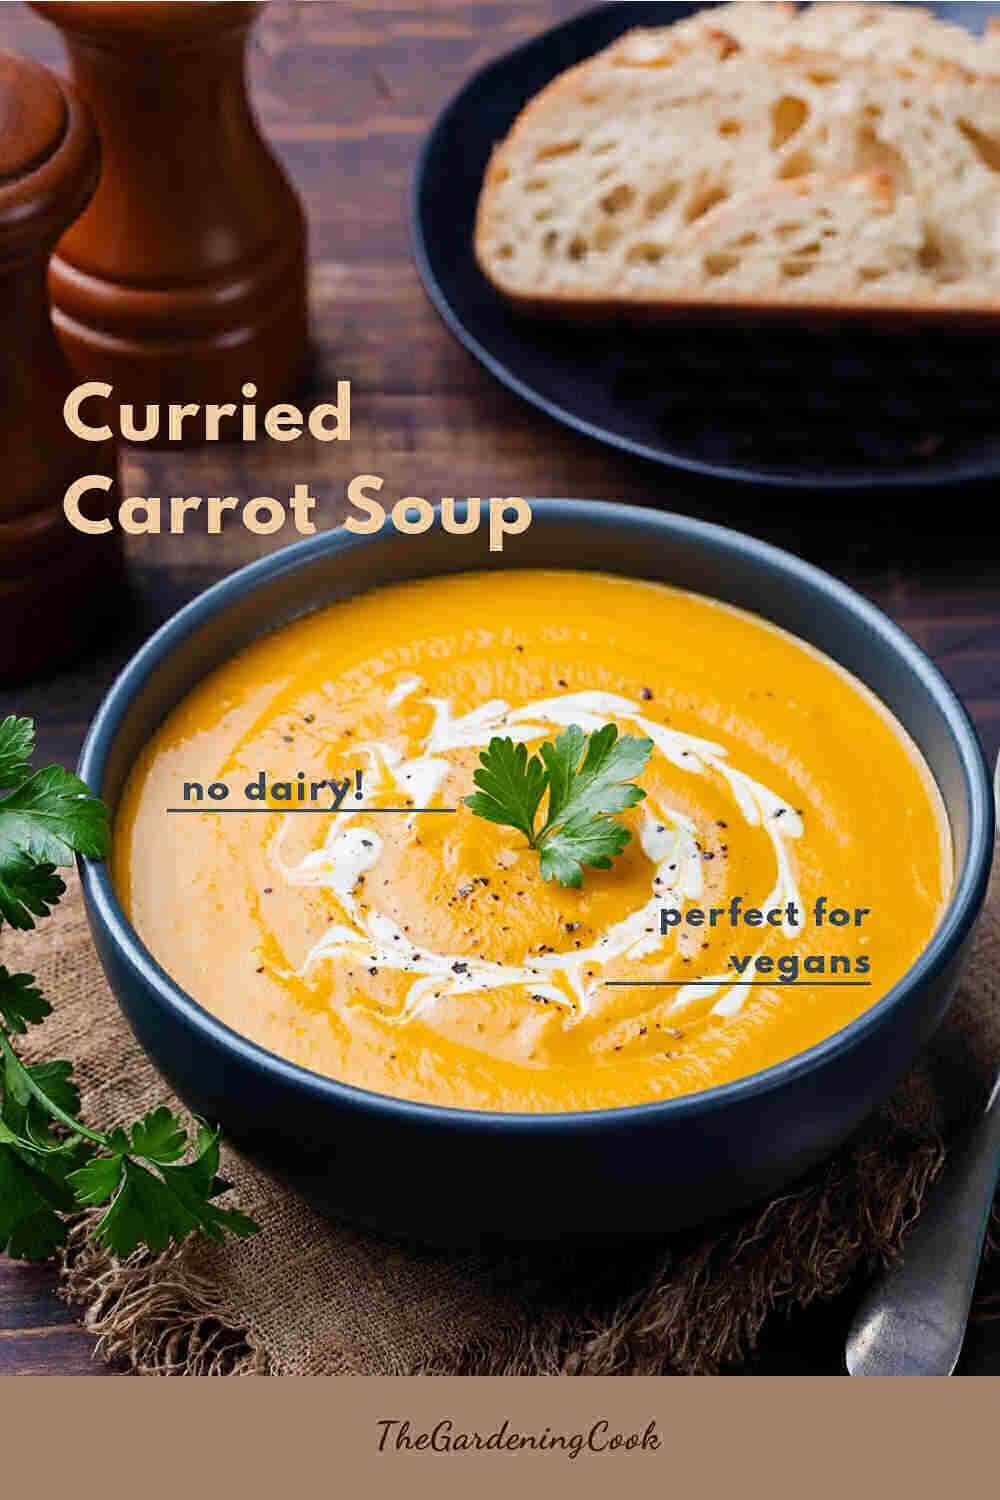 Soup in a bowl with parsley and words Curried Carrot Soup.